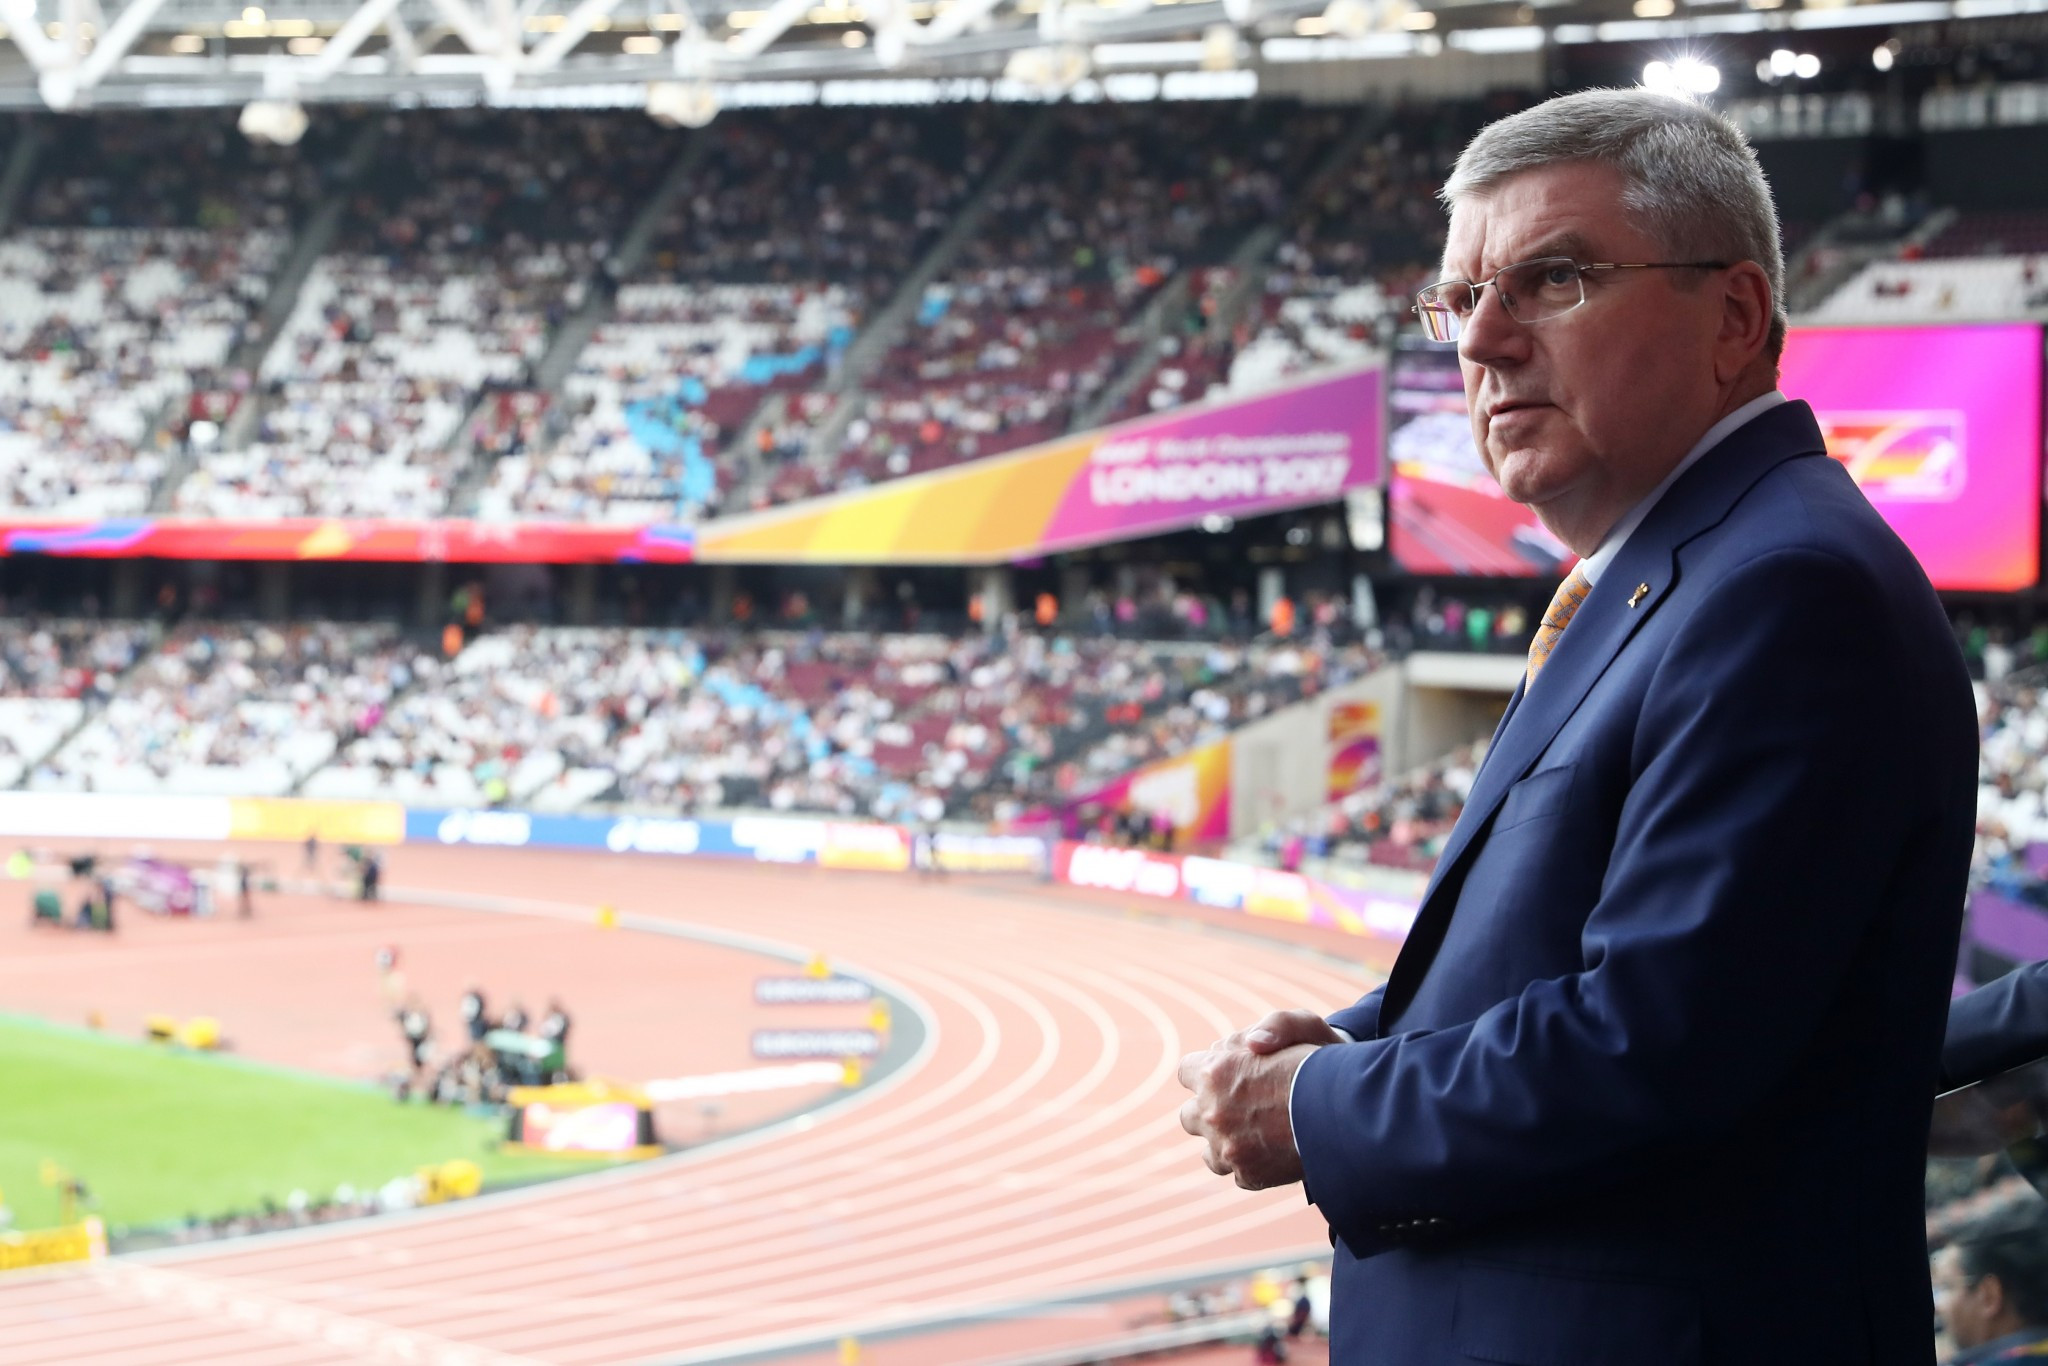 International Olympic Committee President Thomas Bach during a visit to the IAAF World Championships in London ©Getty Images